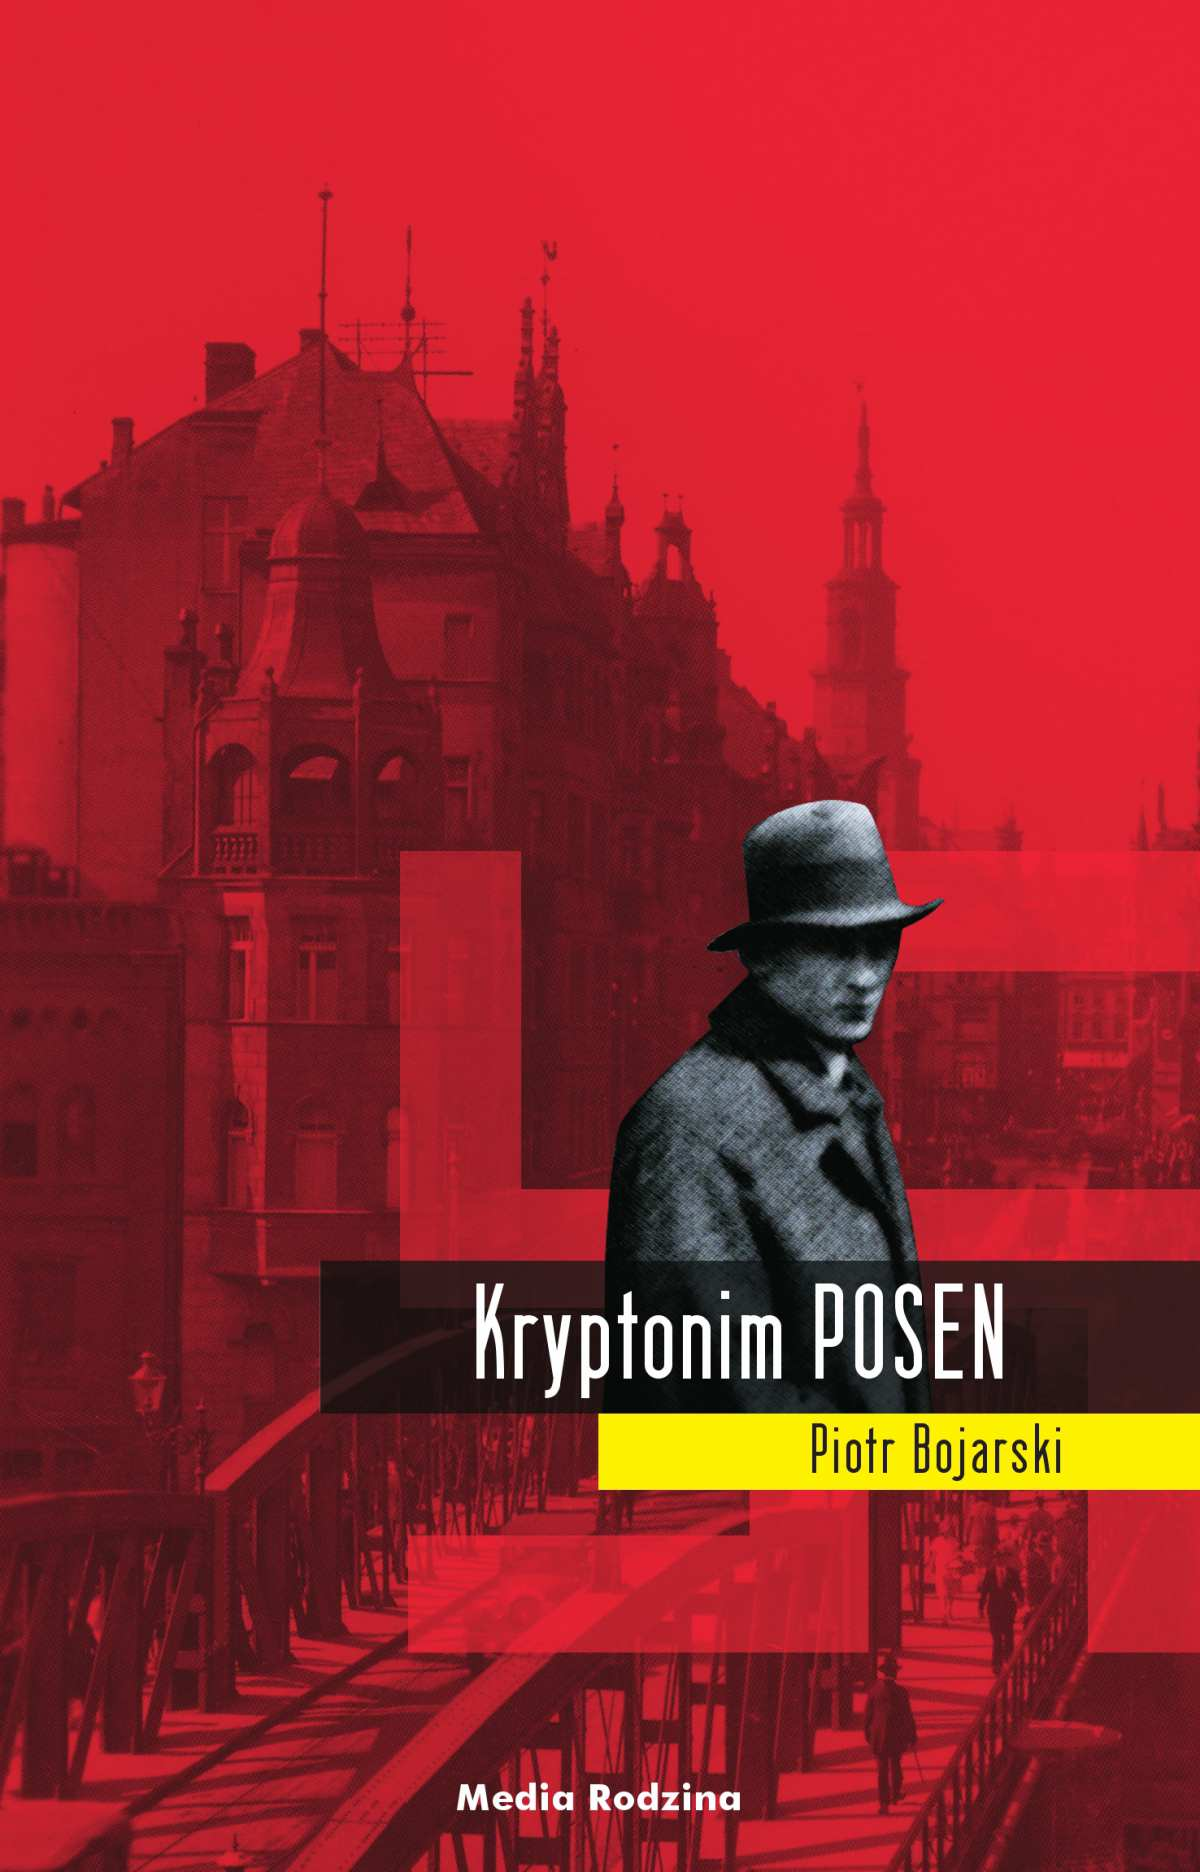 Kryptonim POSEN - Piotr Bojarski